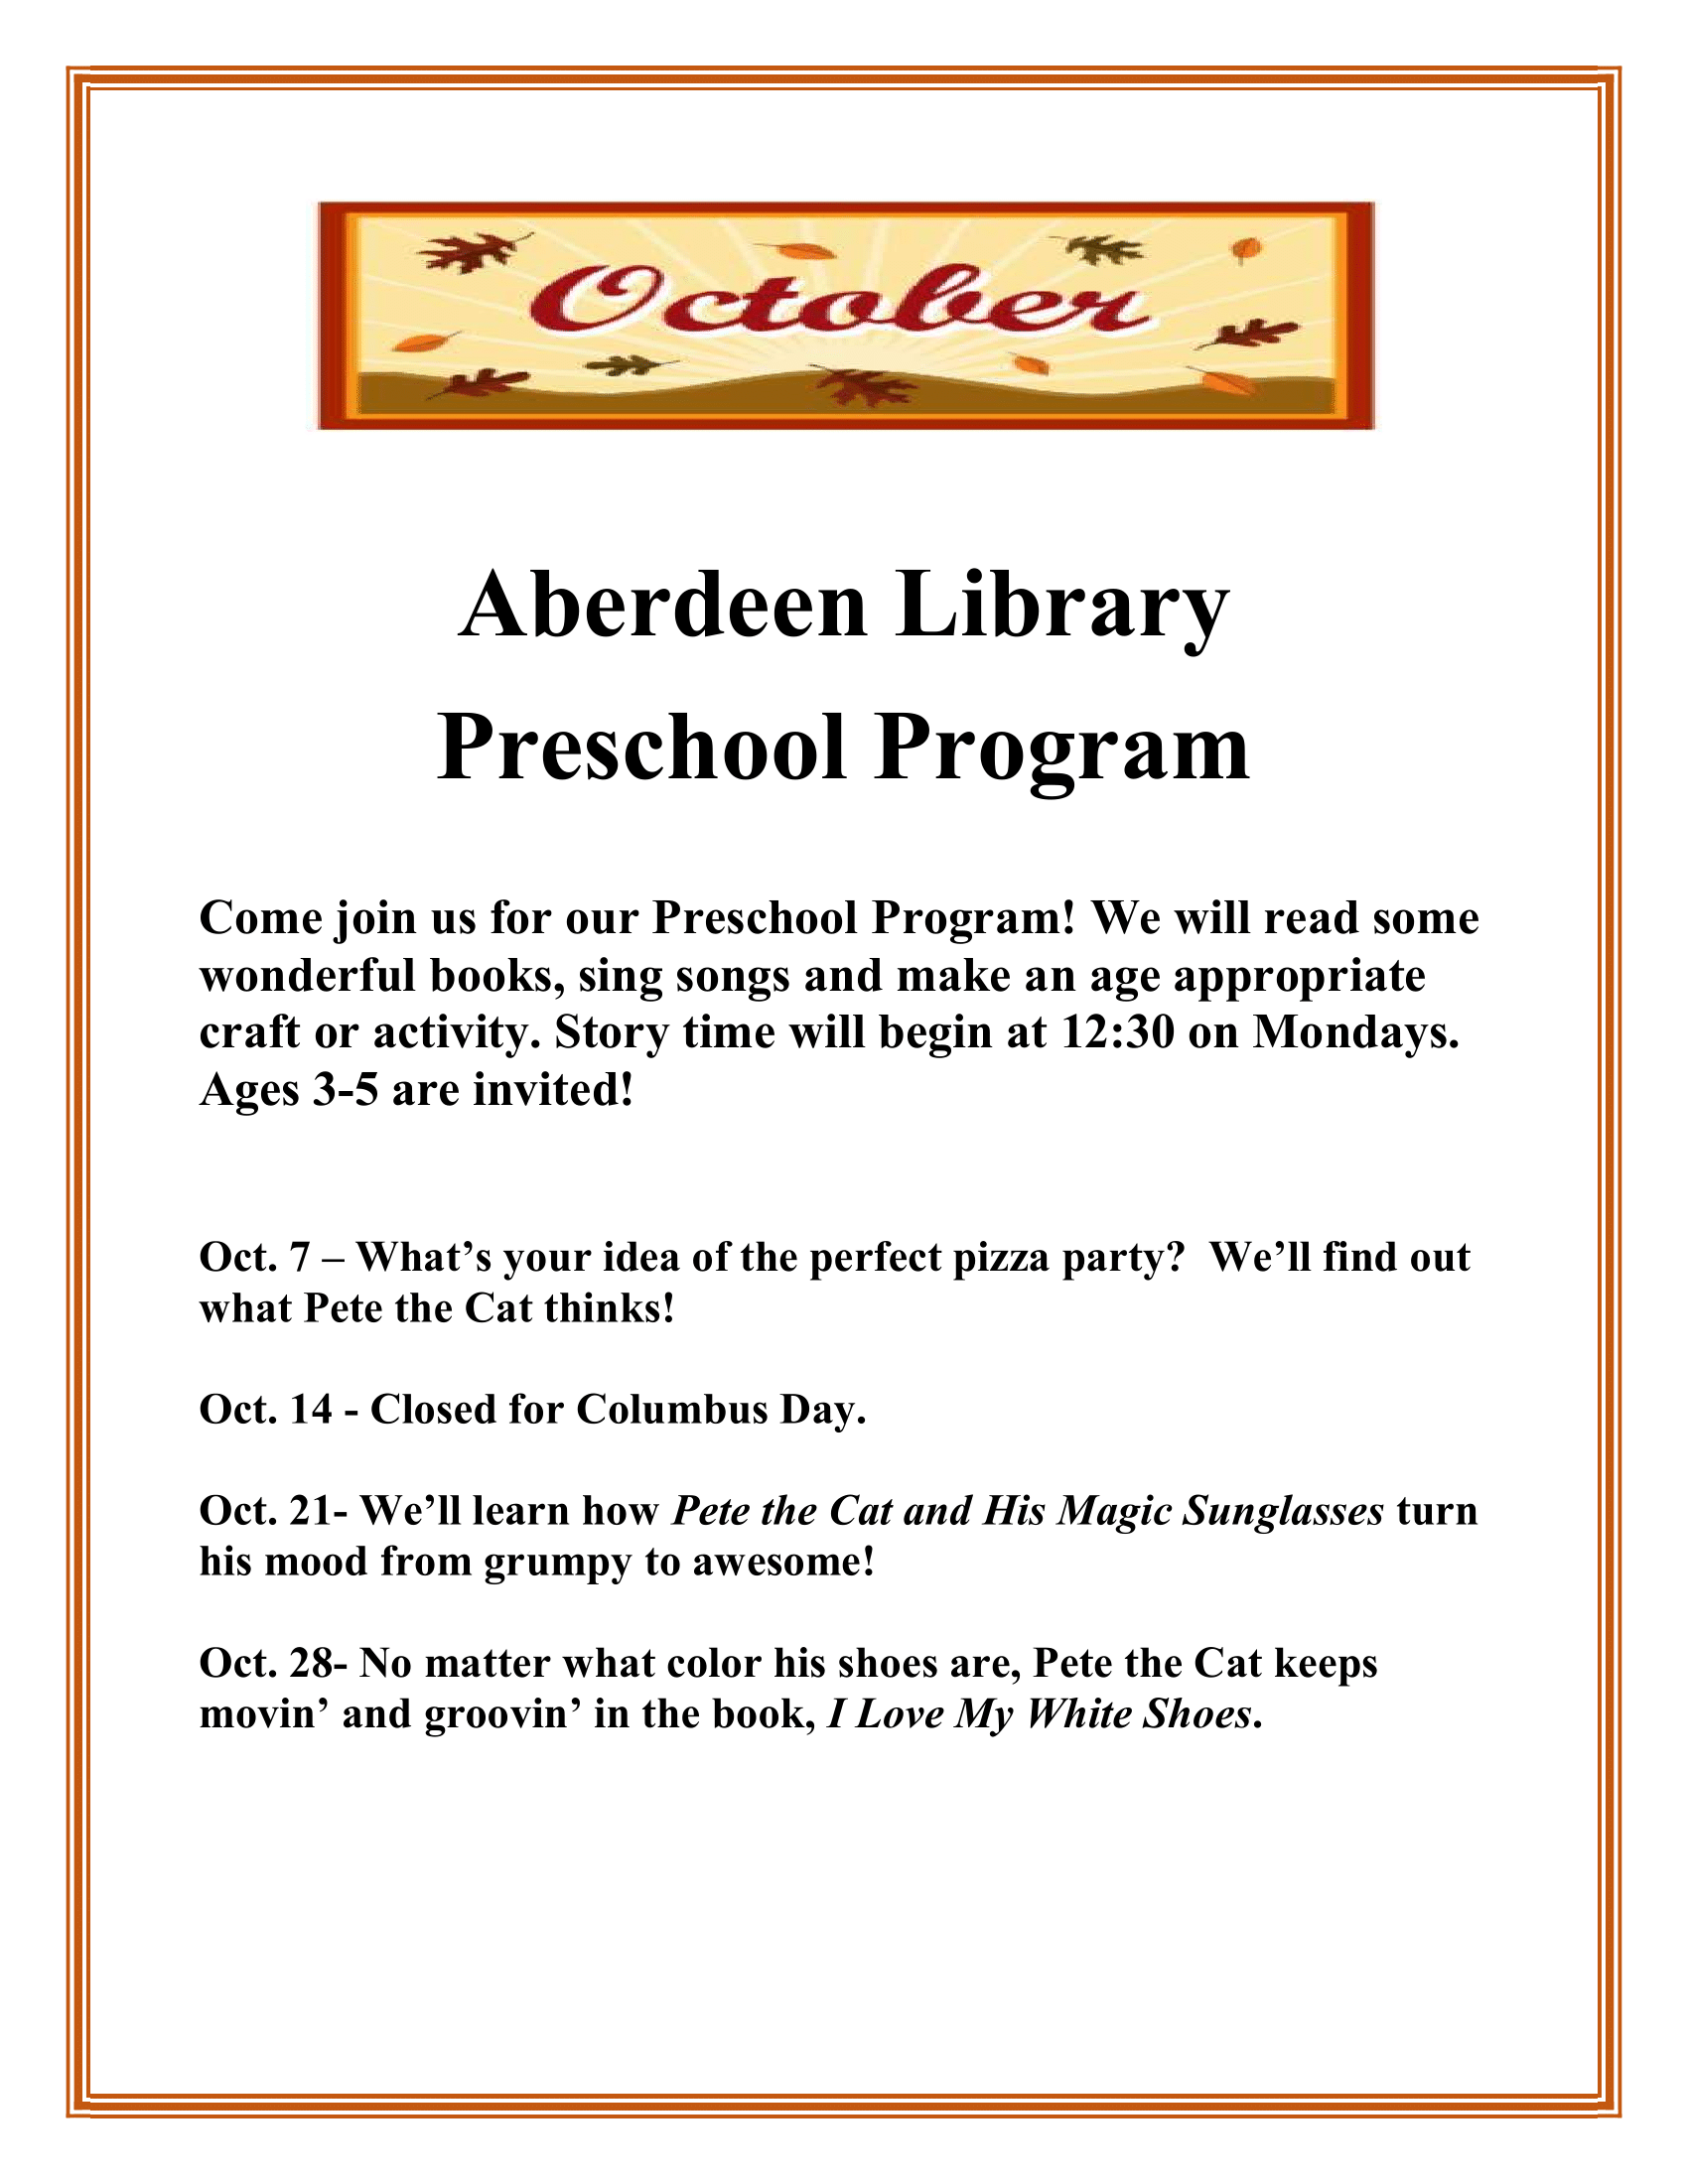 Preschool Program - Aberdeen